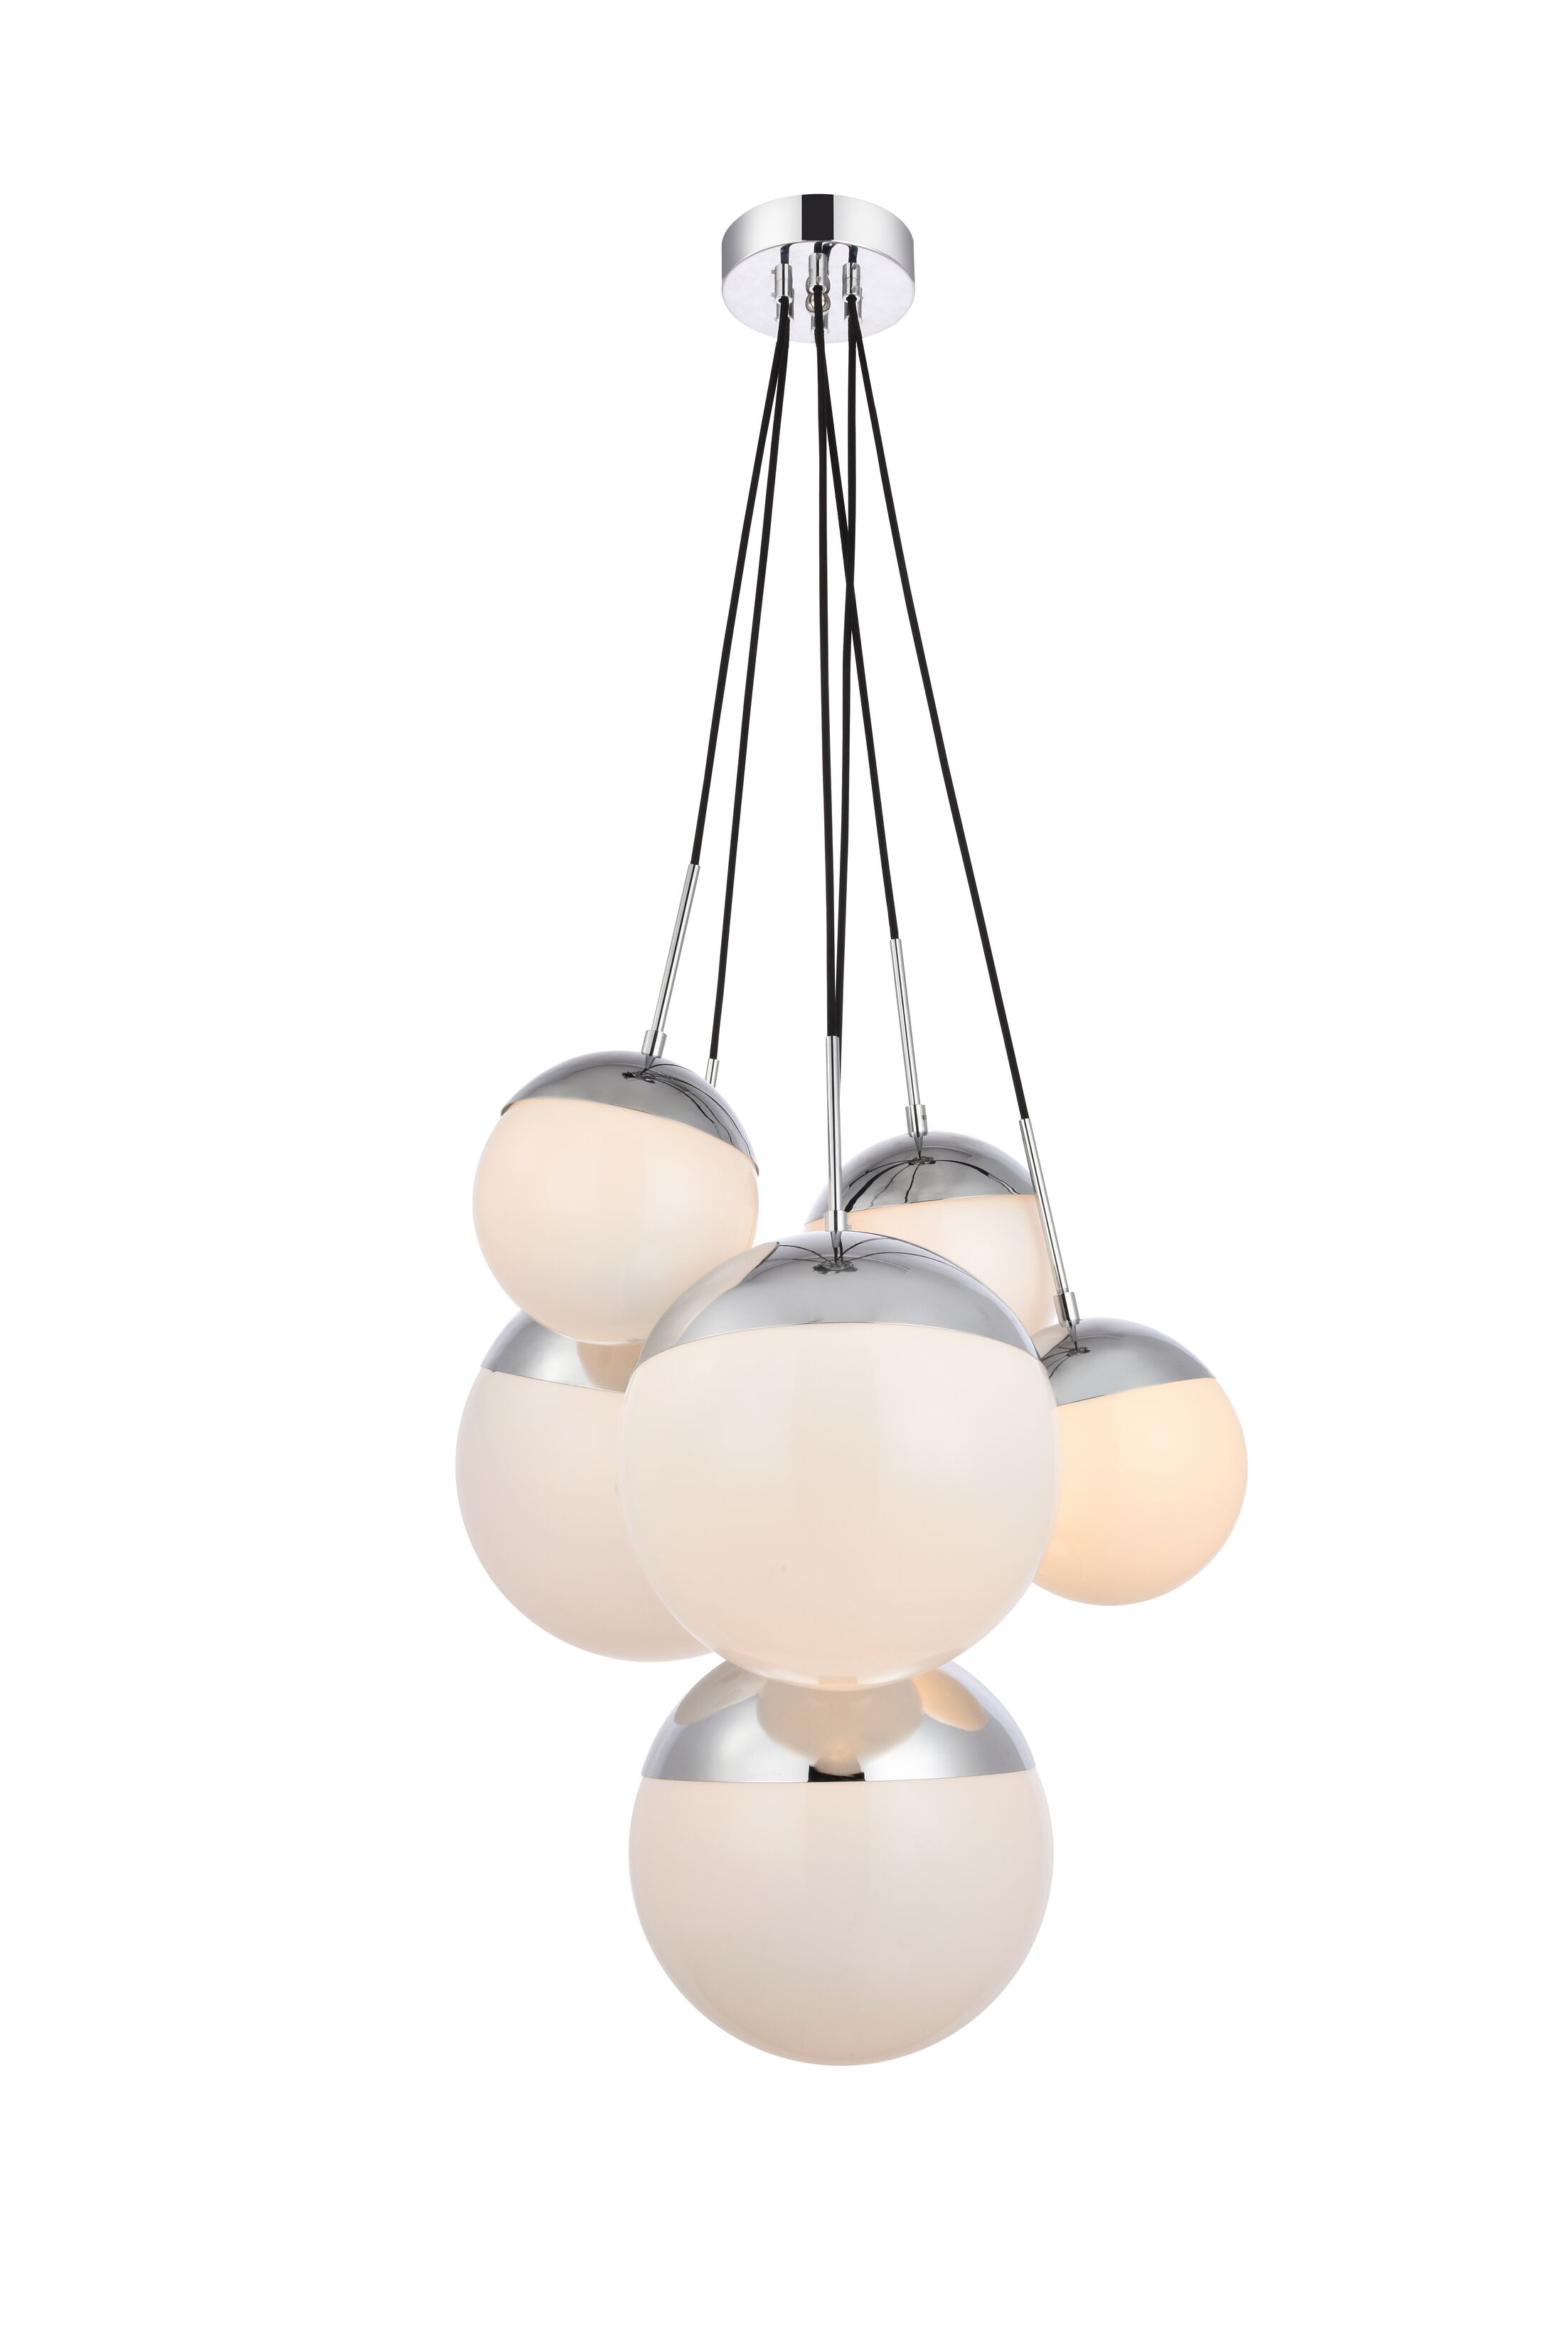 Gilberto 6-Light Cluster Pendant Finish: Chrome, Shade Color/Pattern: Frosted White